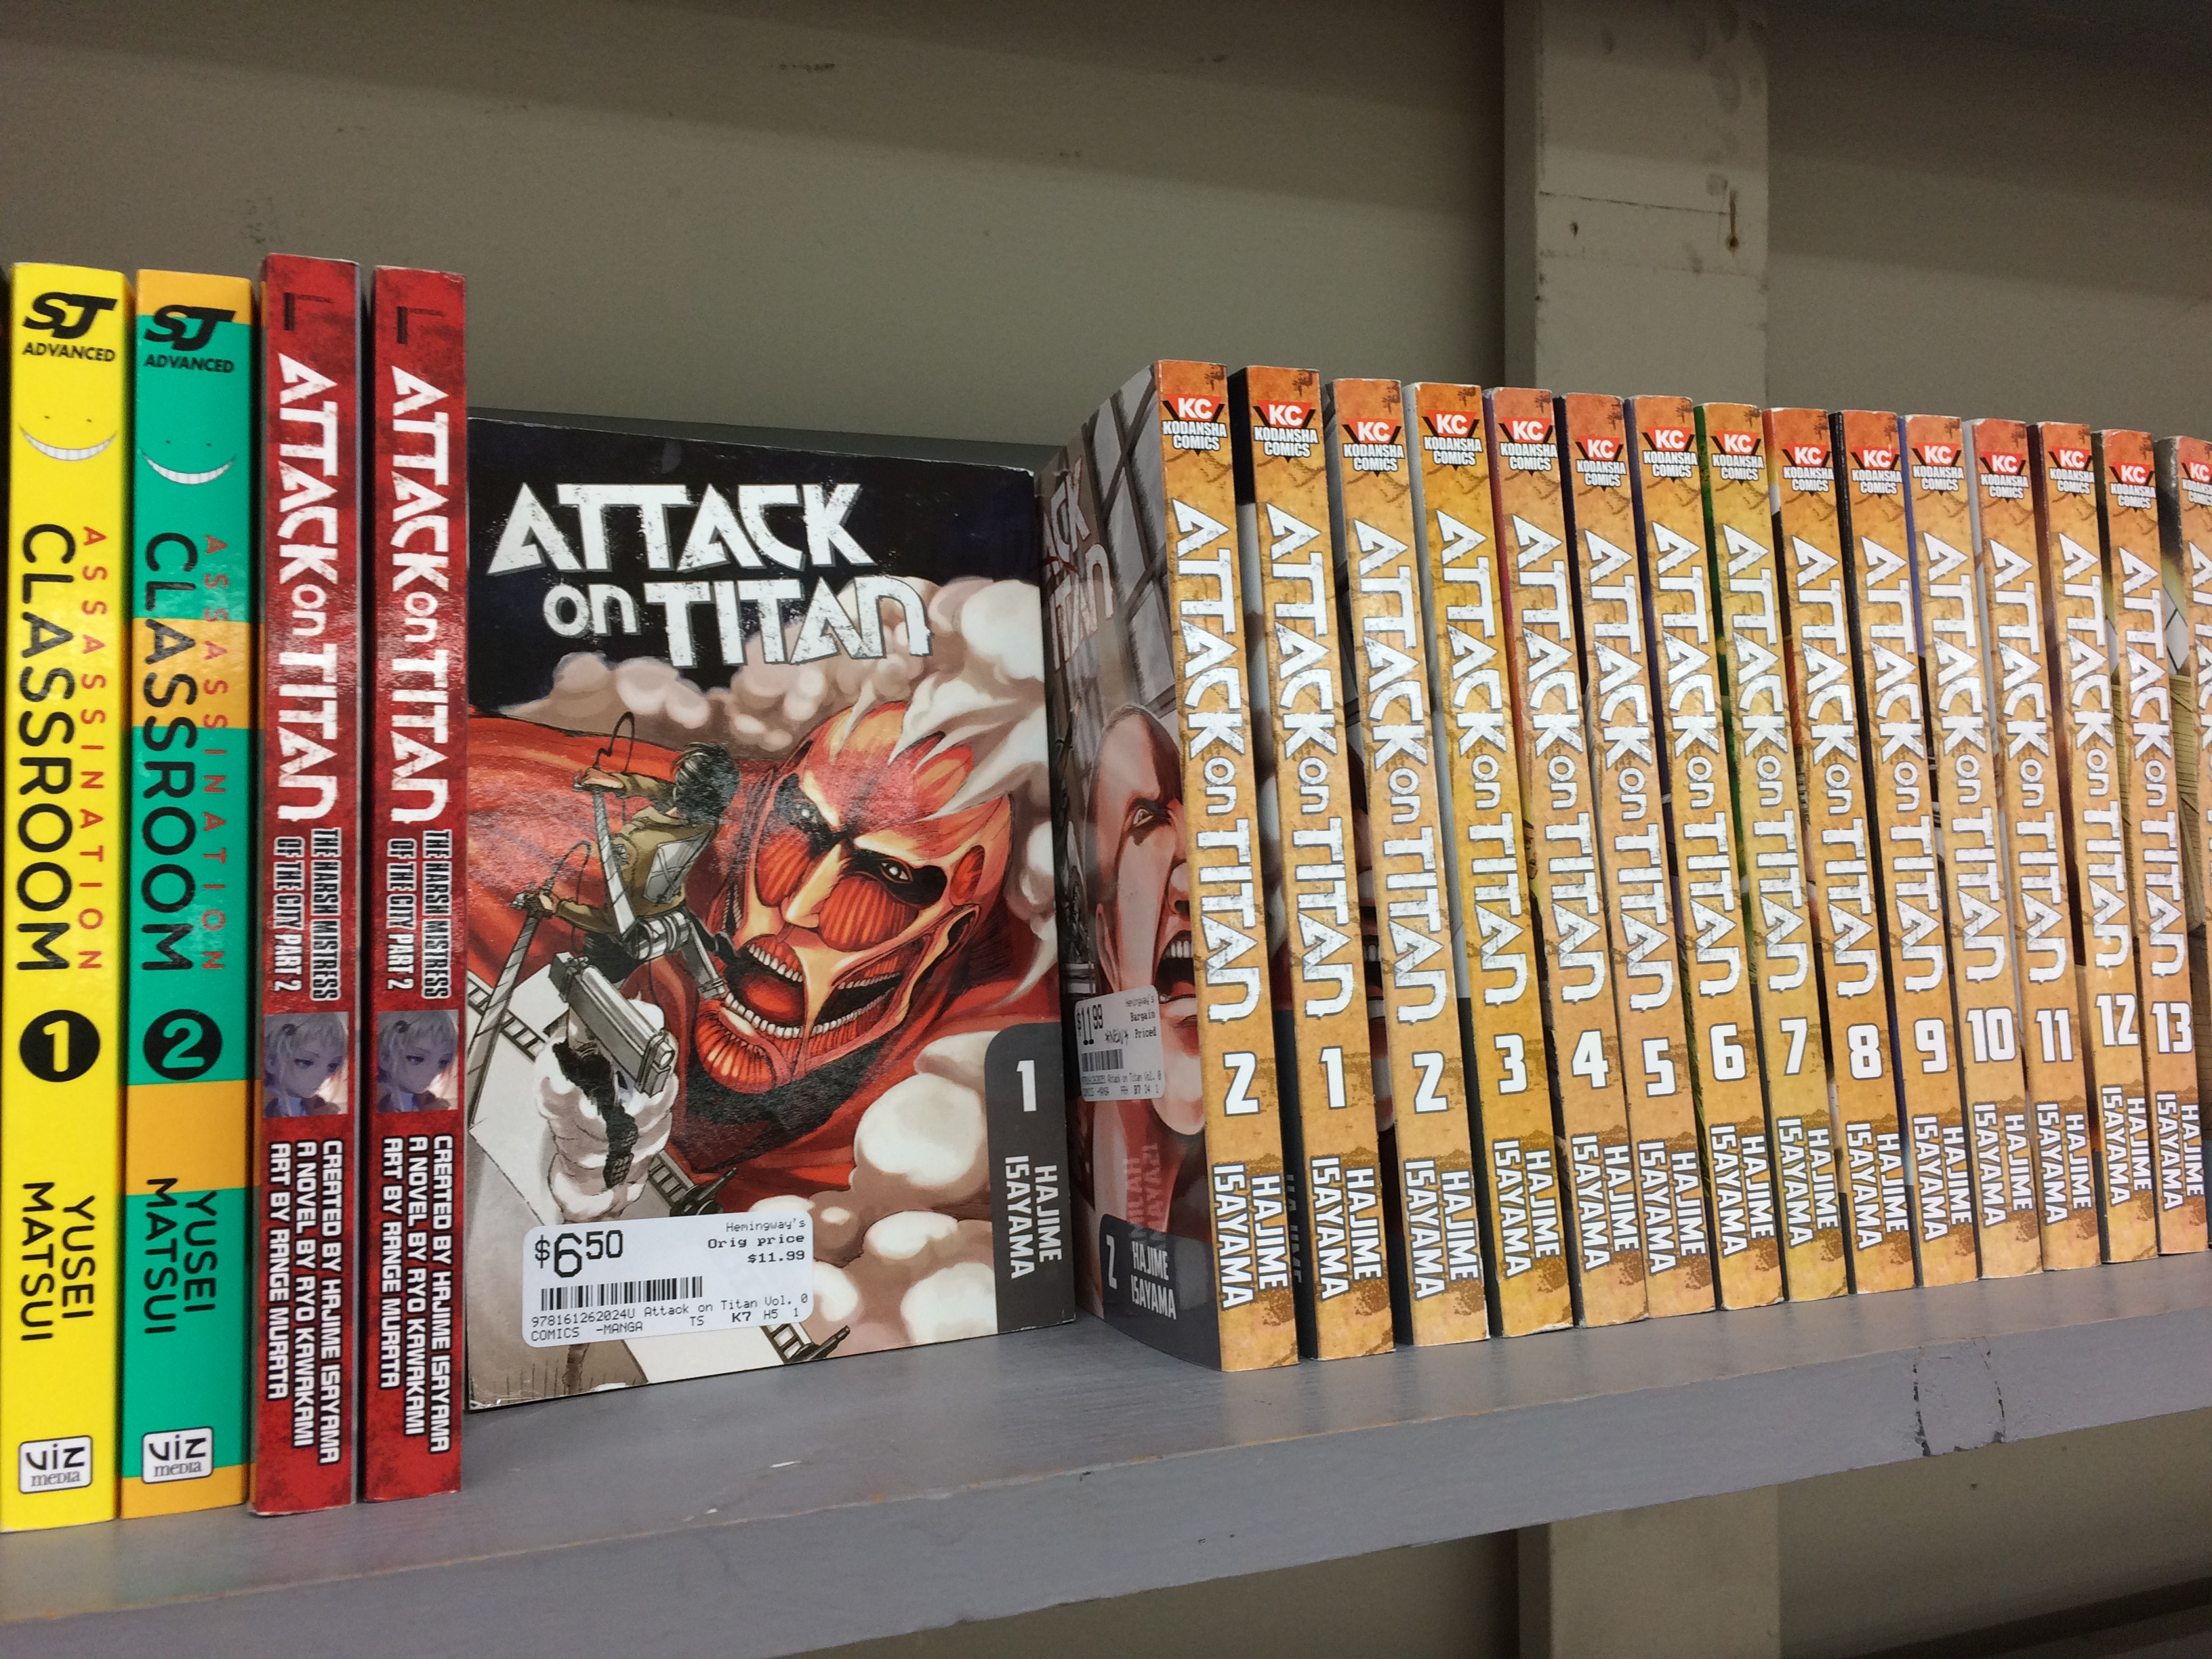 We are also lucky enough to have found a ton of used attack on titan manga so come get them while theyre hot